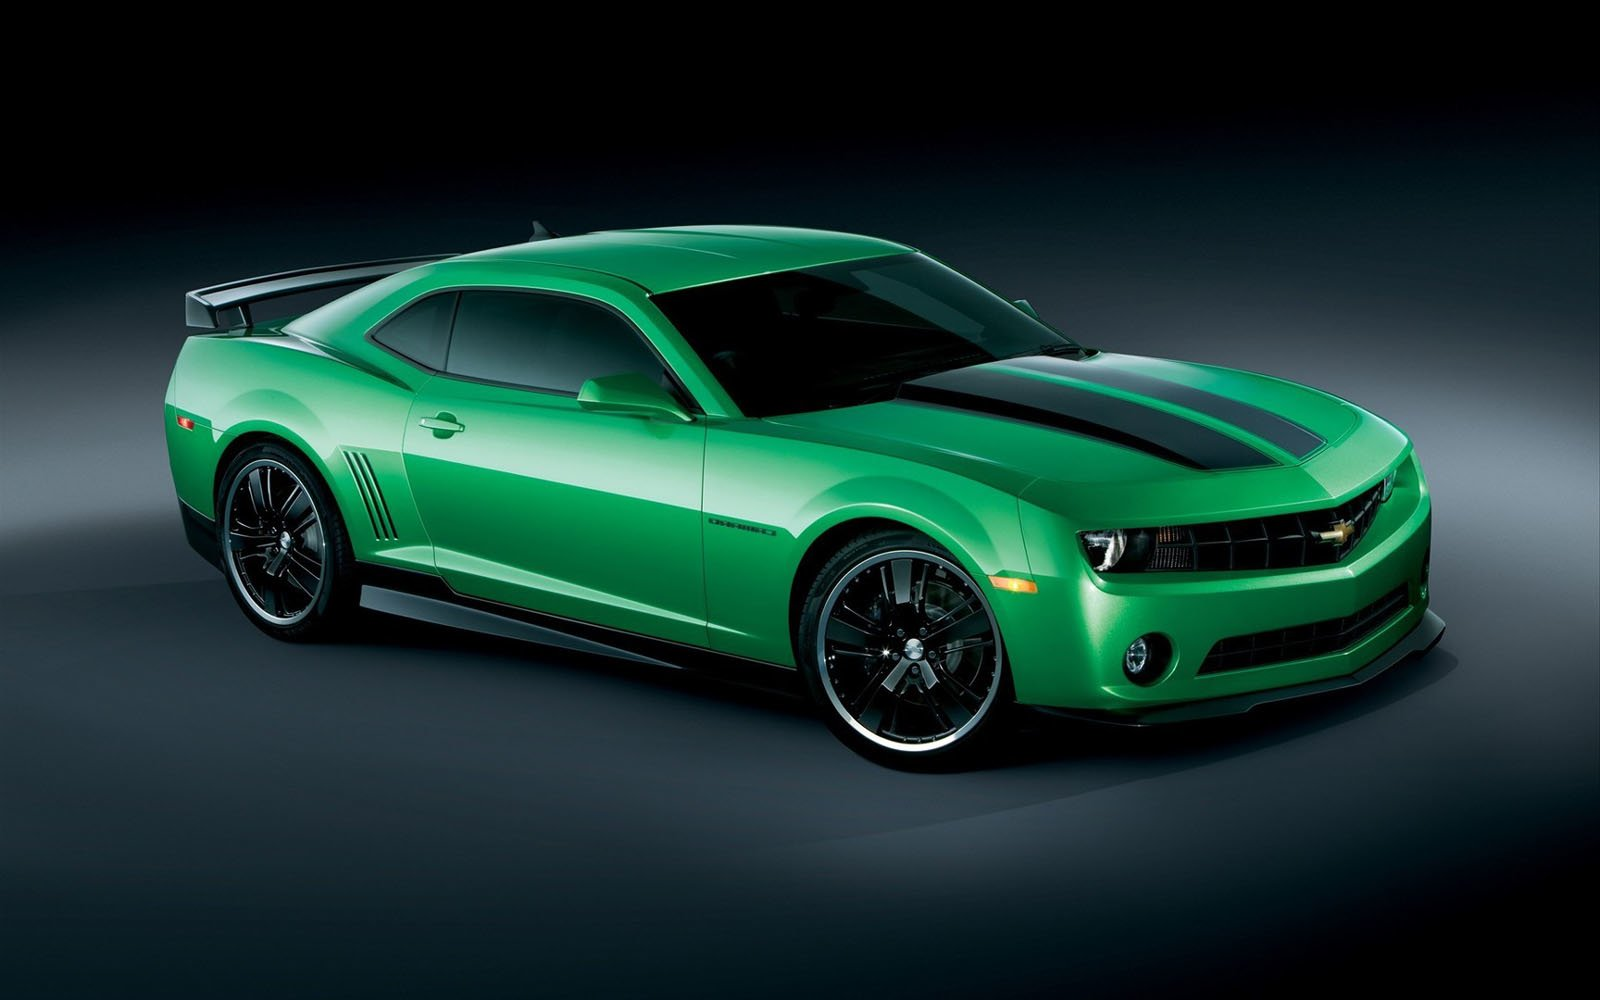 New Wallpaper Chevrolet Camaro Synergy Car Wallpapers On This Month